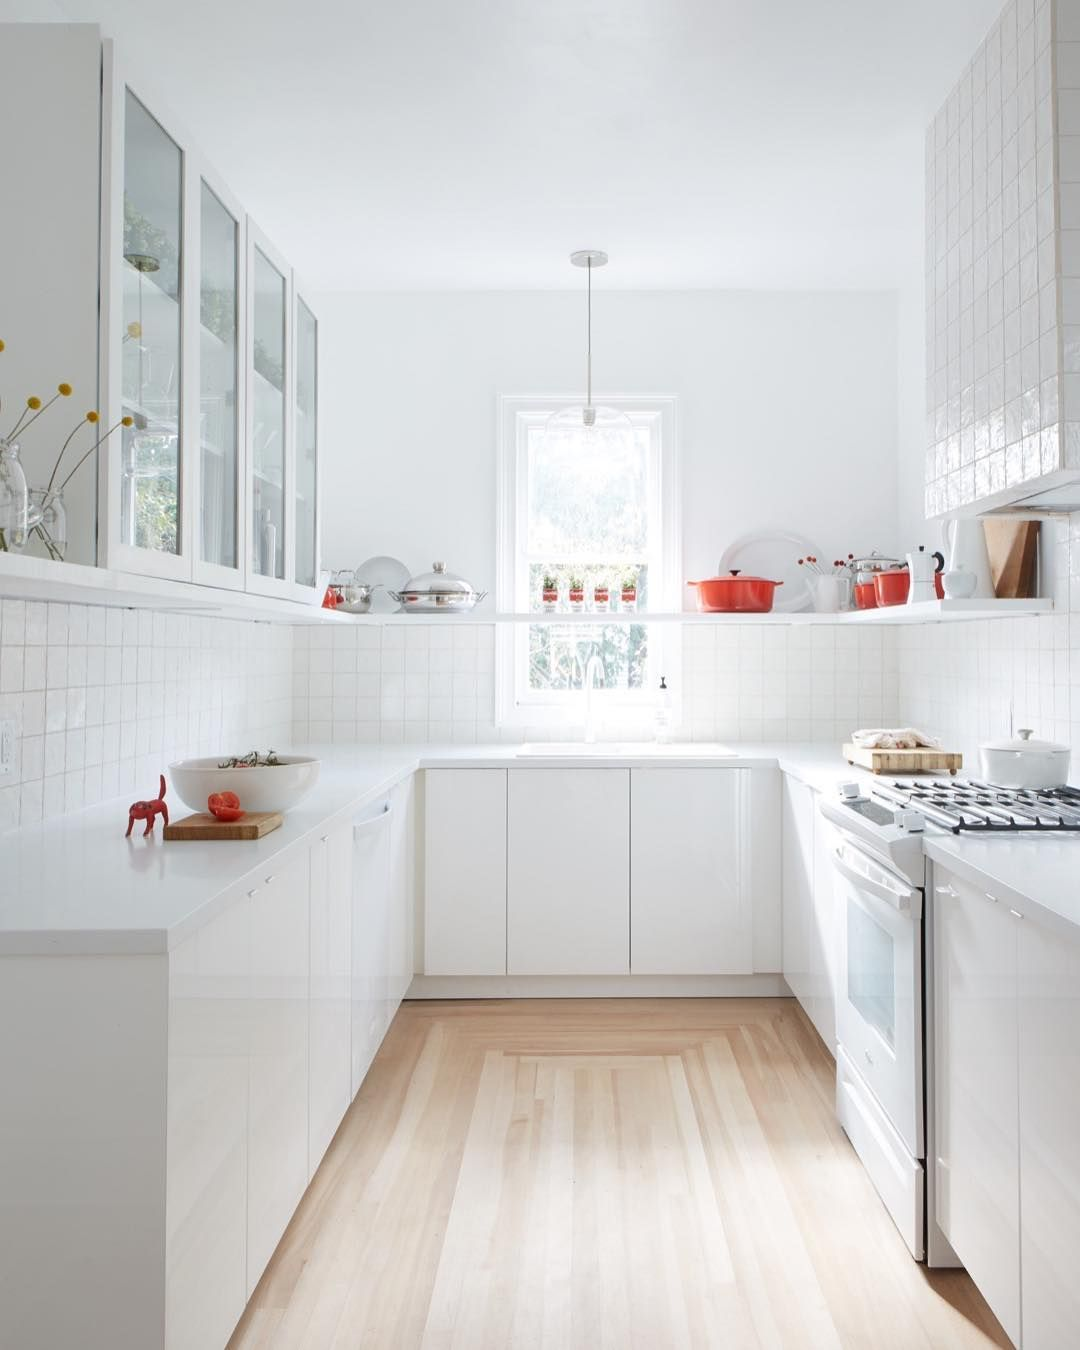 In An Instagram Posted On Sunday Leanne Ford Shared Images Of A Kitchen Featured On H Kitchen Countertops Laminate Laminate Kitchen White Laminate Countertops